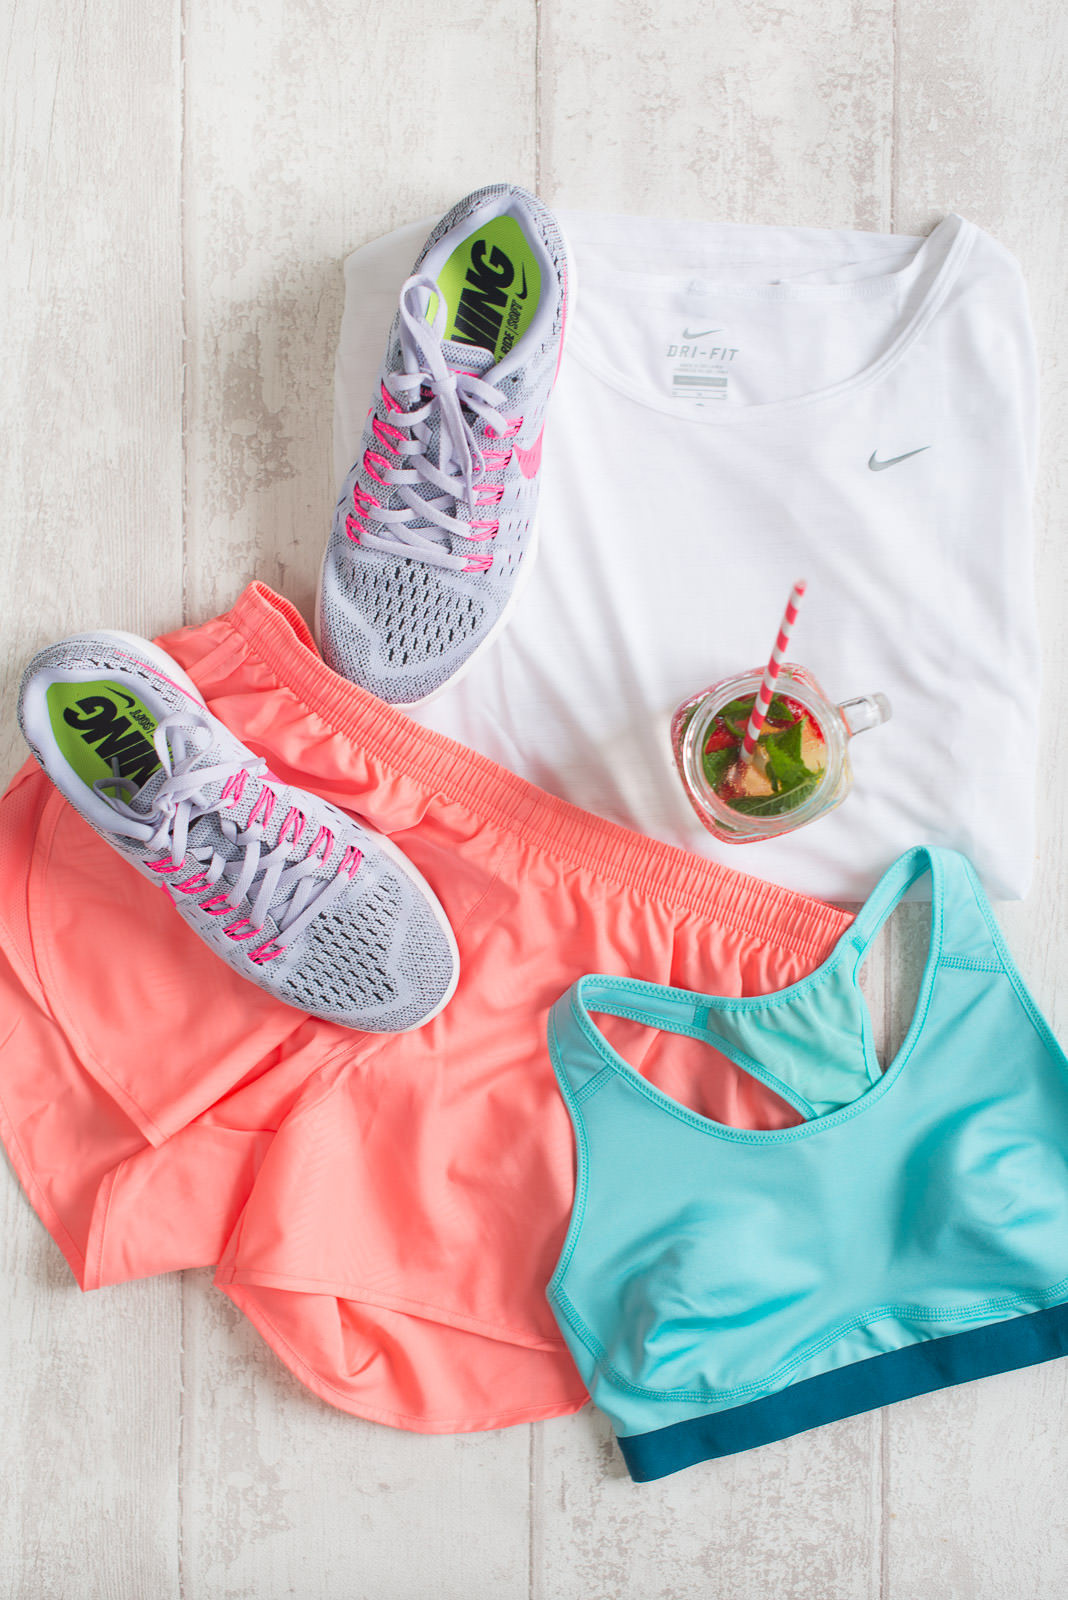 Blog-mode-and-the-city-lifestyle-nike-food